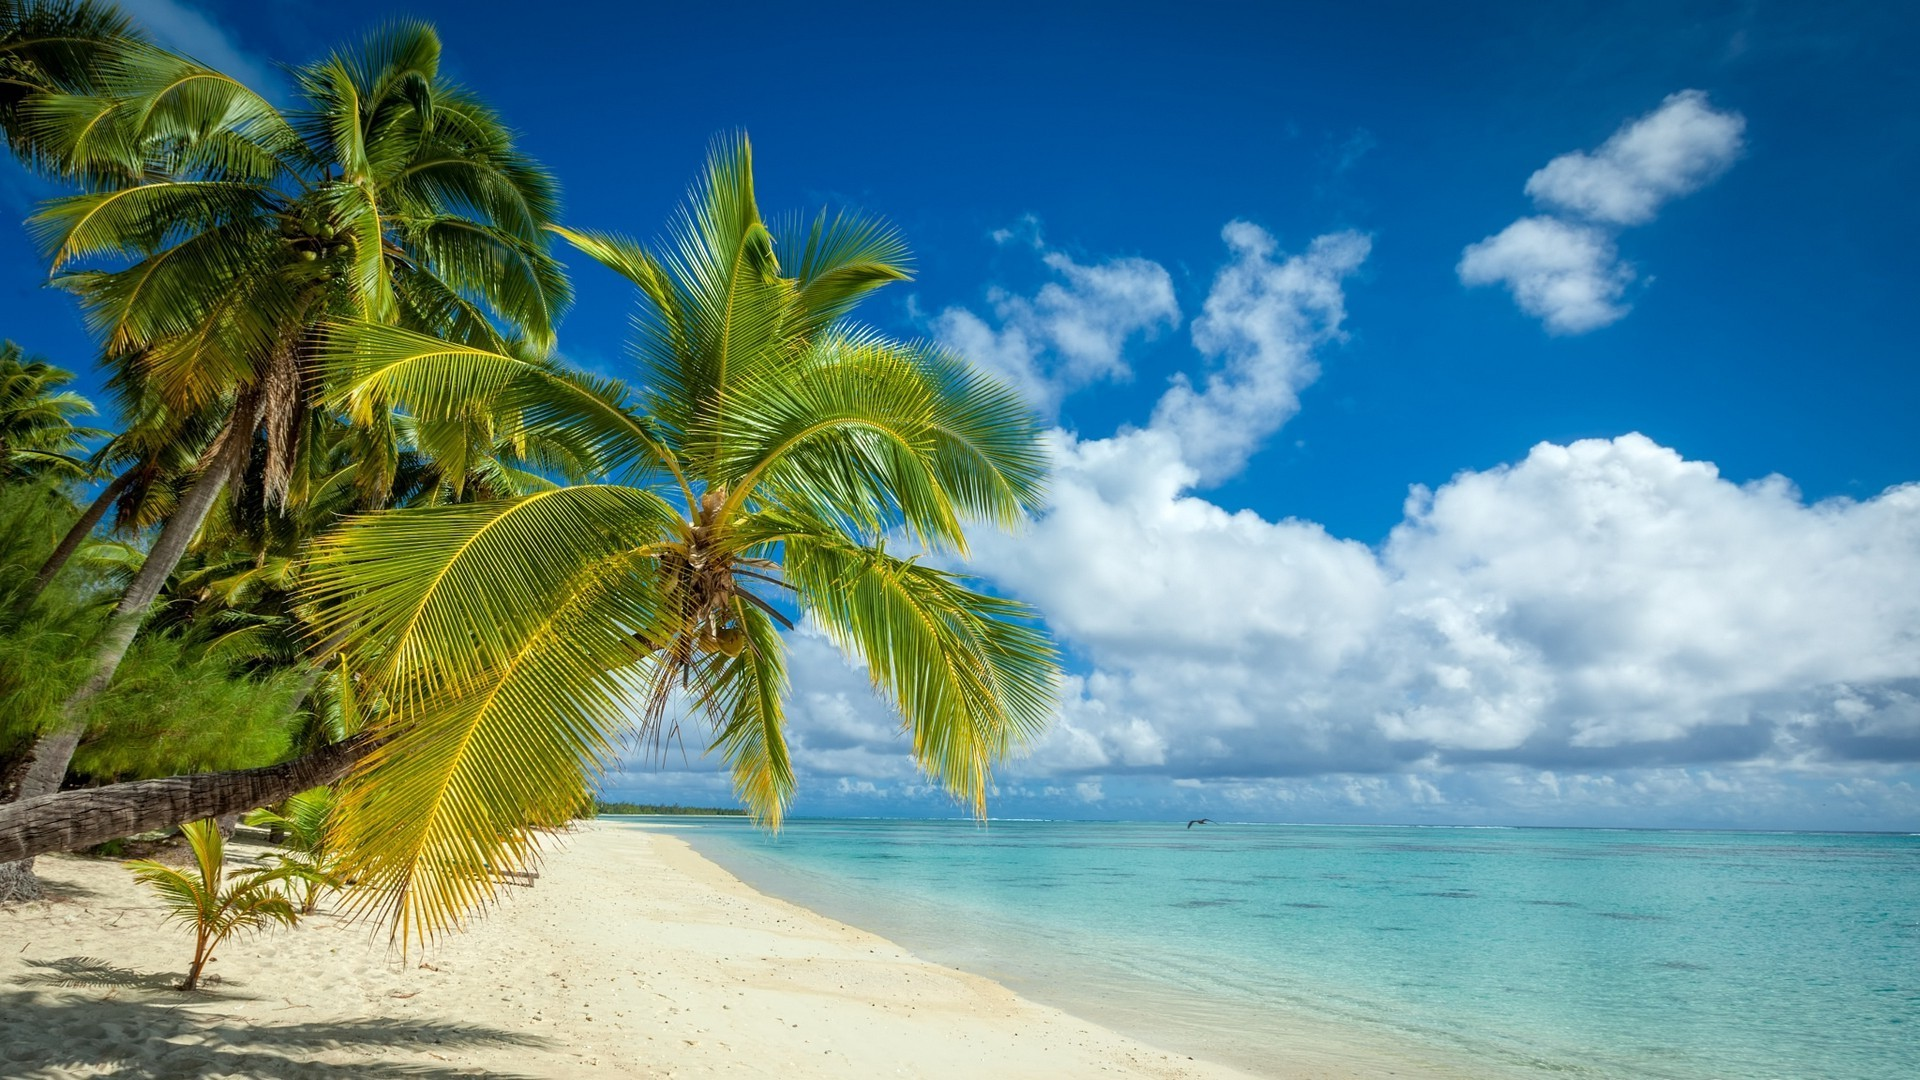 1920x1200 Hd Tropical Island Beach Paradise Wallpapers And Backgrounds